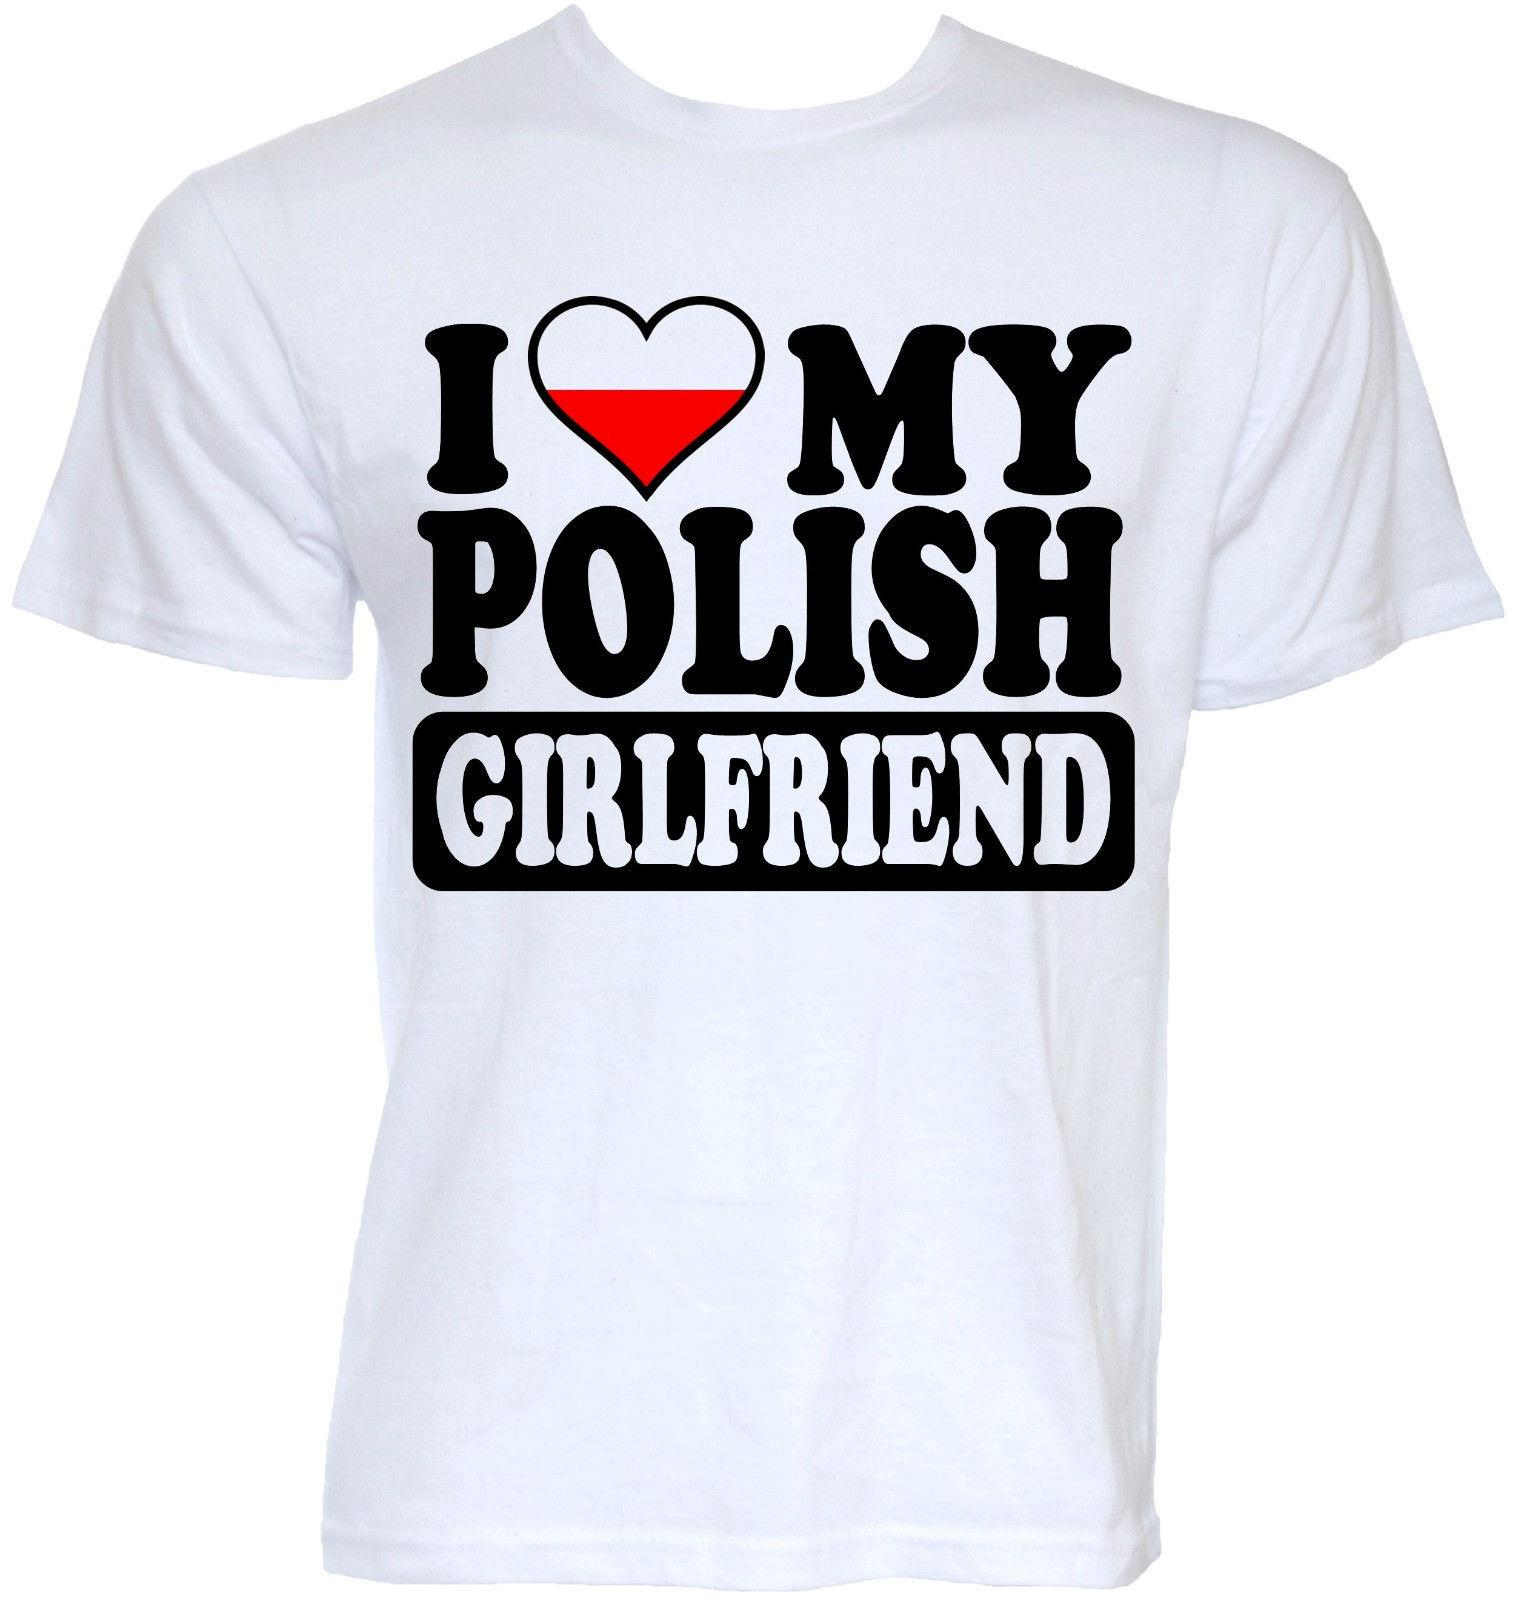 baea017c NOVELTY POLISH T SHIRTS FUNNY COOL POLAND GIRLFRIEND JOKE FLAG RUDE GIFT T  SHIRT Funny Unisex Casual Tee Gift Tees Cool T Shirts From Noveltgifts, ...